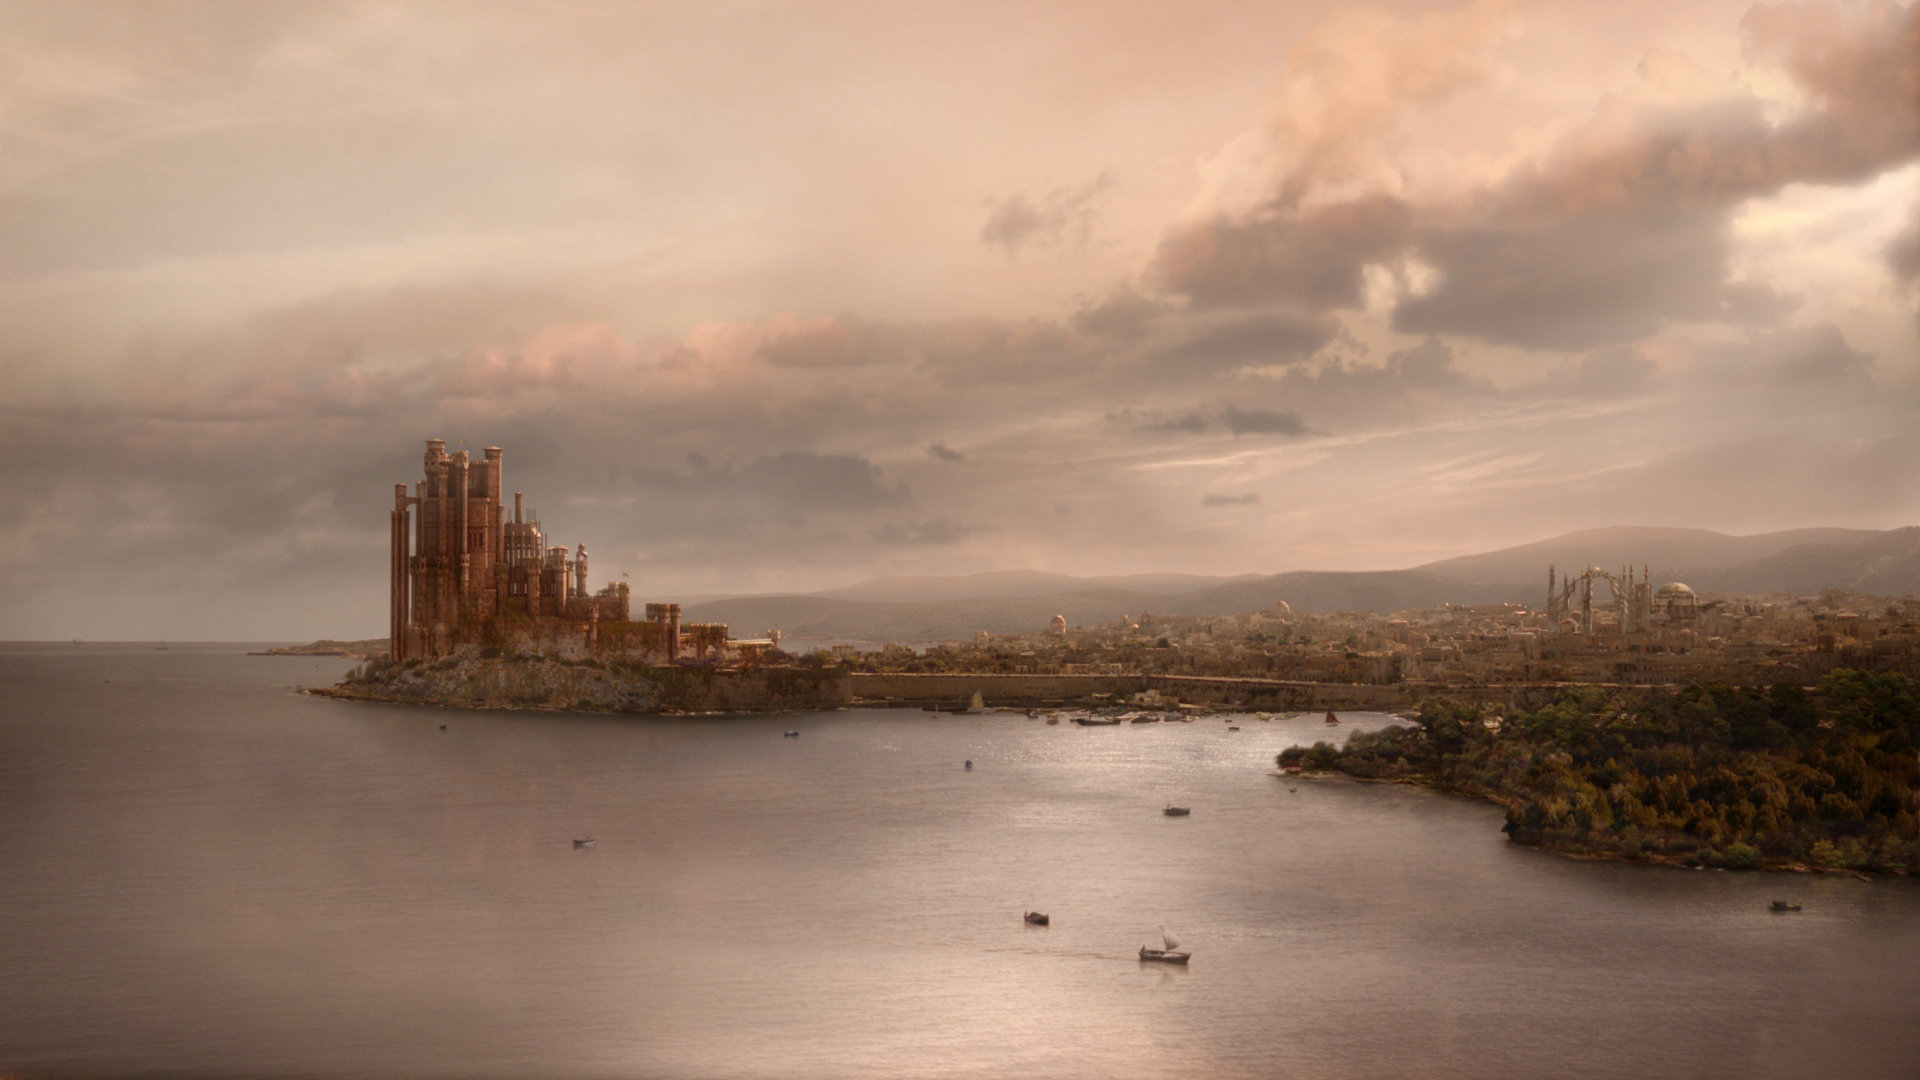 game of thrones wallpapers 1920x1080 full hd 1080p desktop backgrounds